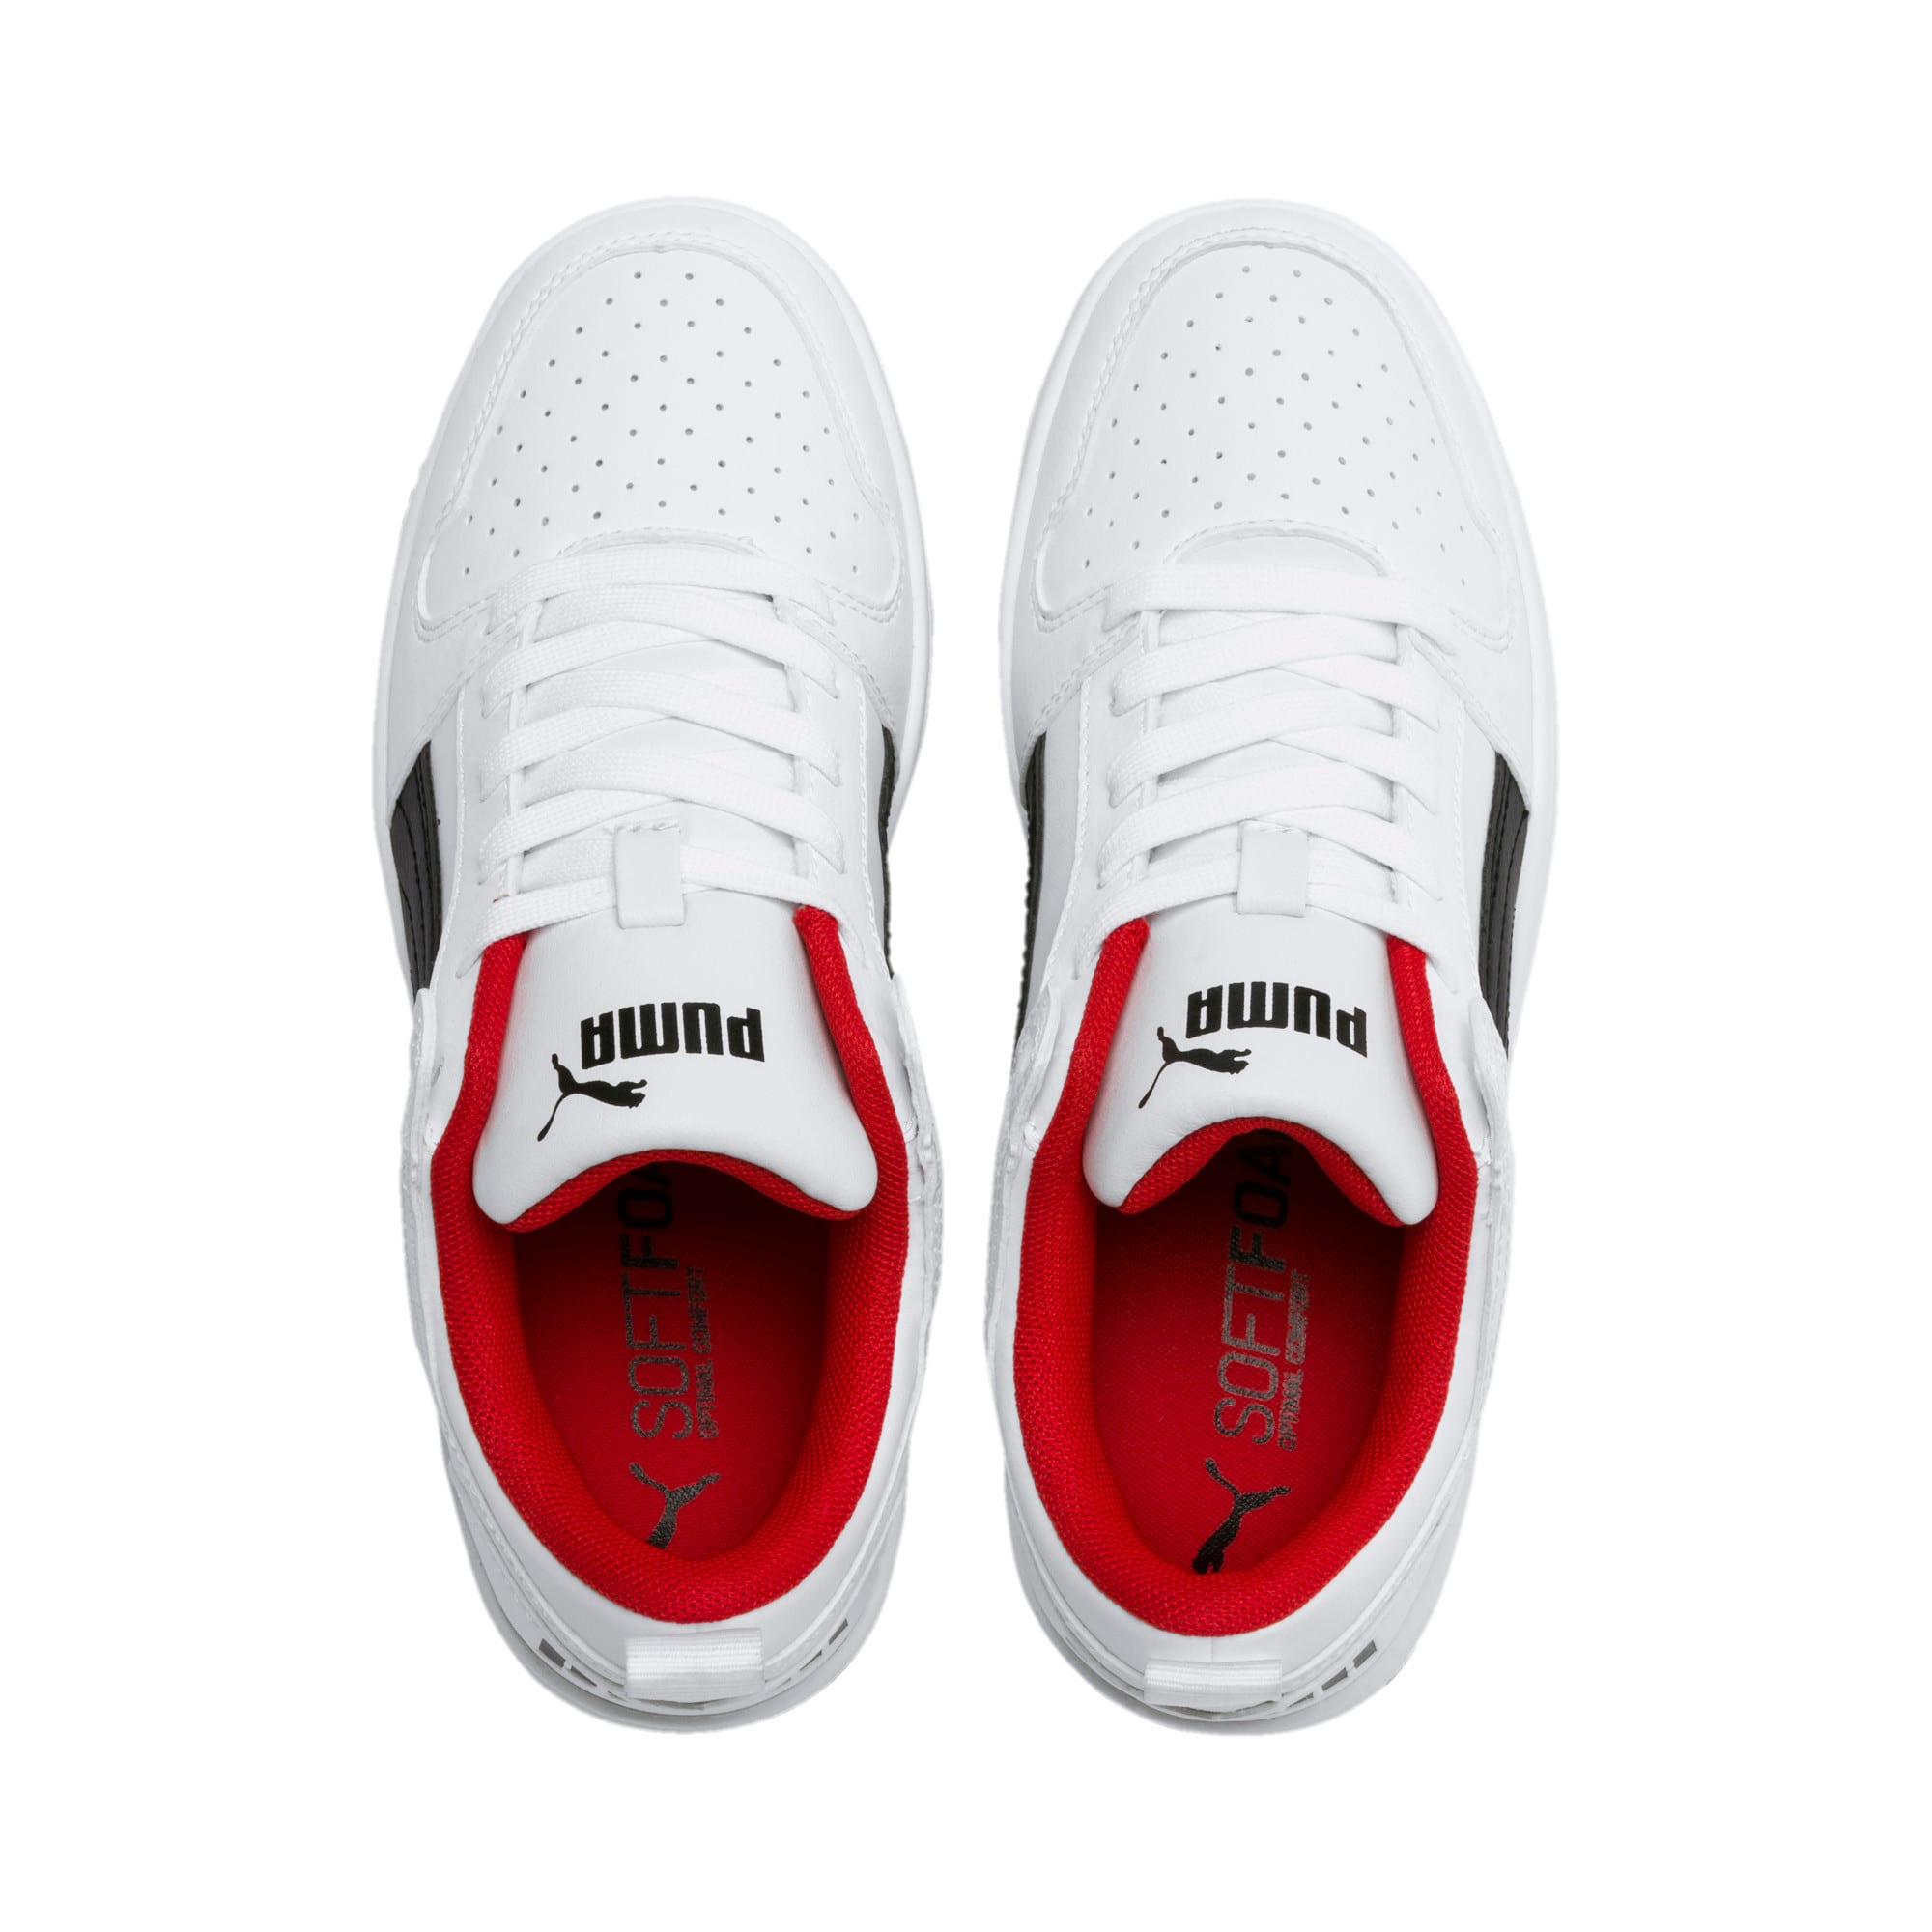 Thumbnail 2 of Rebound Lay-Up Lo Youth Trainers, Puma White-Puma Black-Red, medium-IND